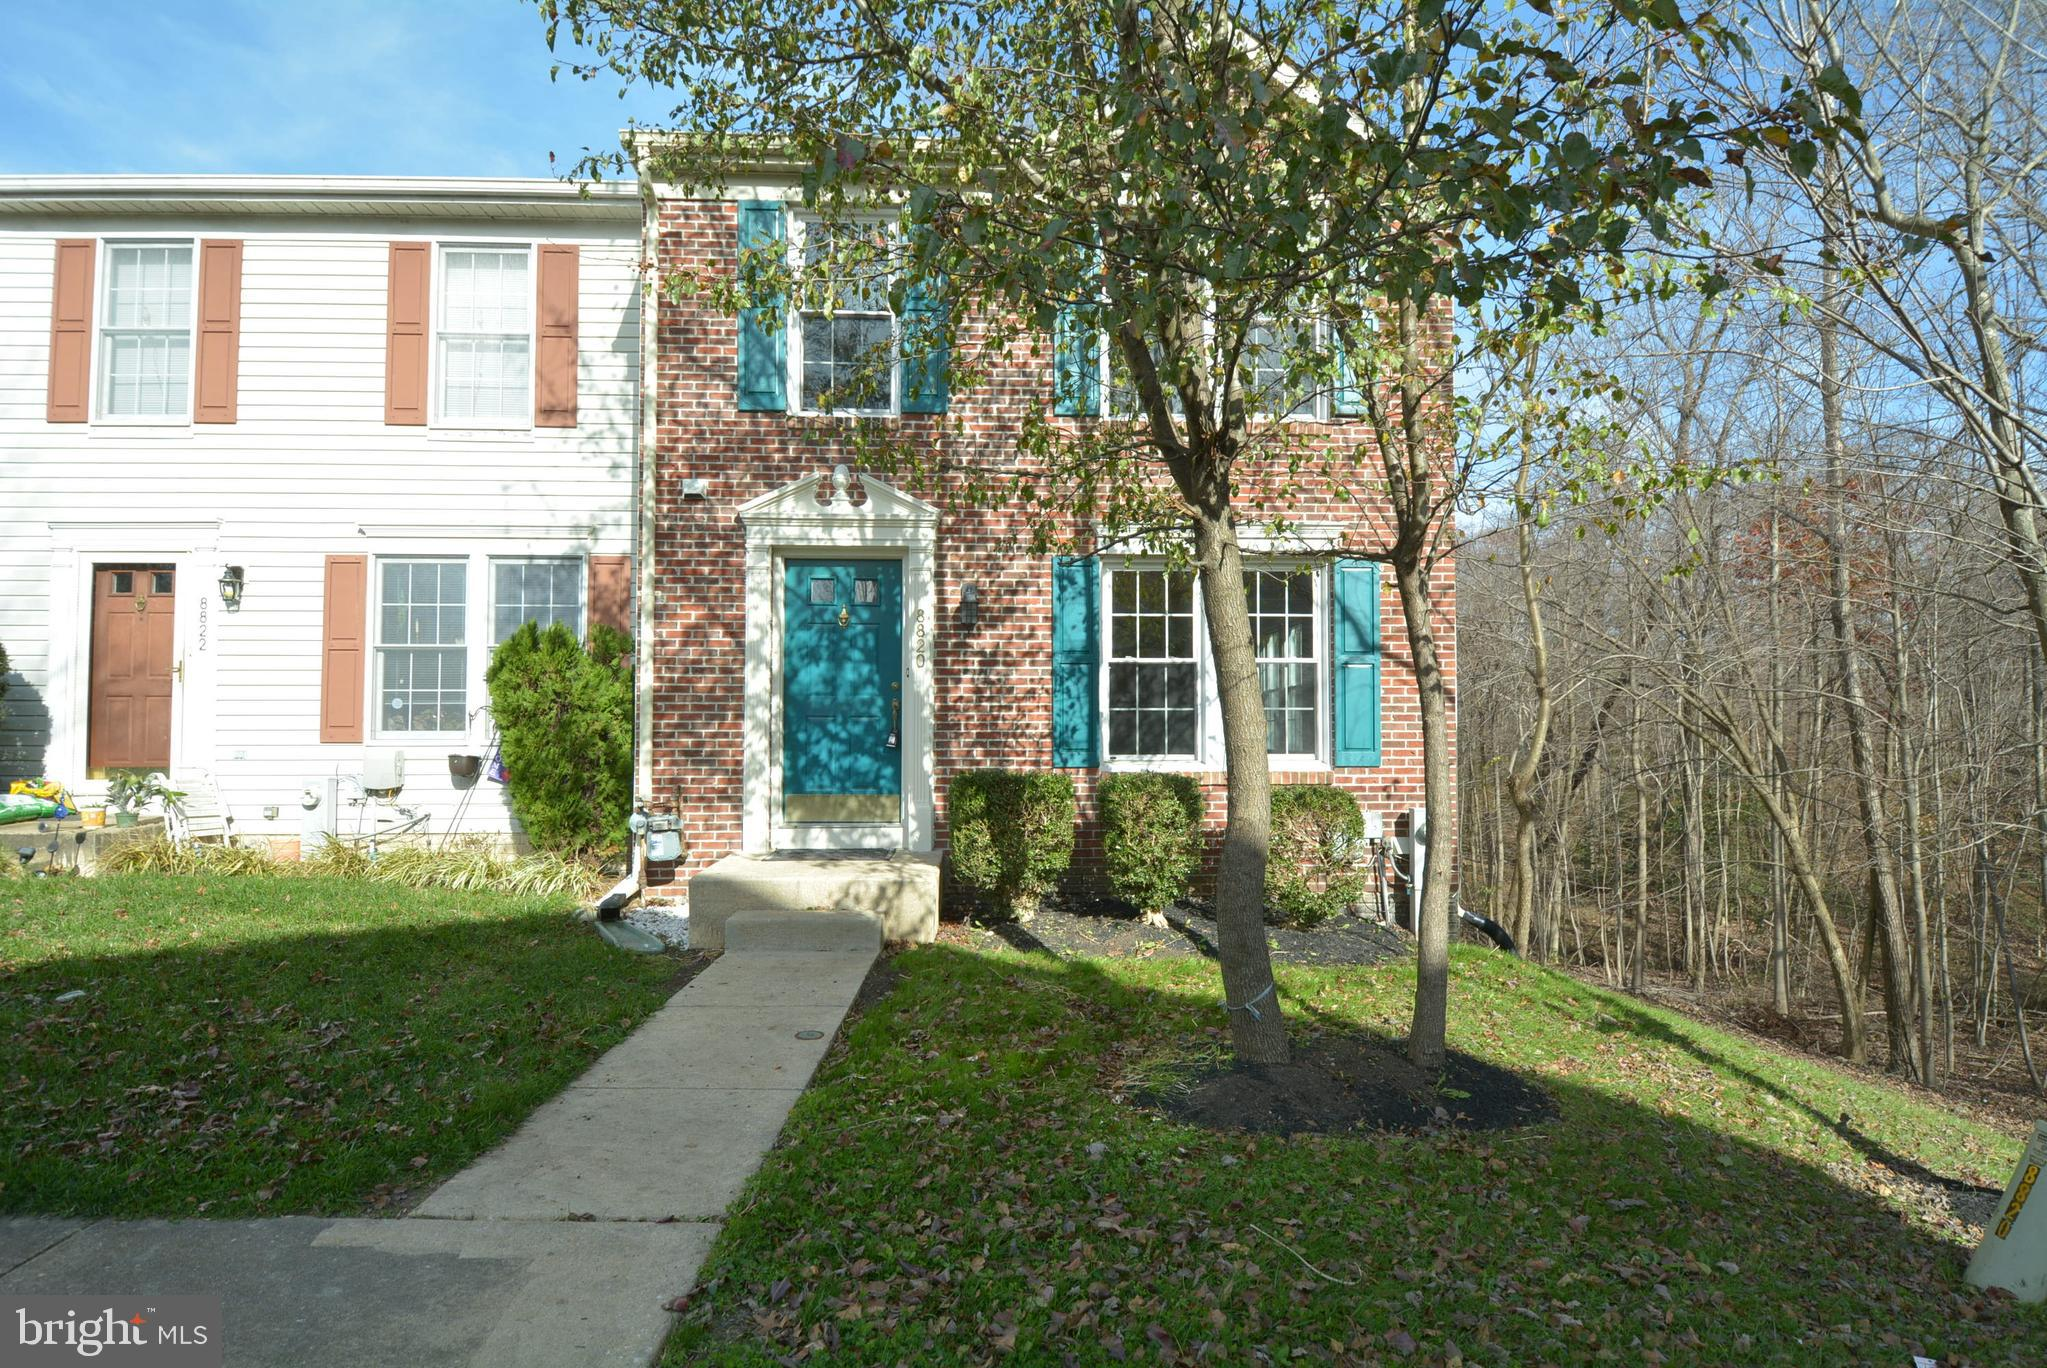 Recently renovated Gorgeous end unit town house w/Brick front backs to woods 3 BR., 2.5 BA; Deck ove